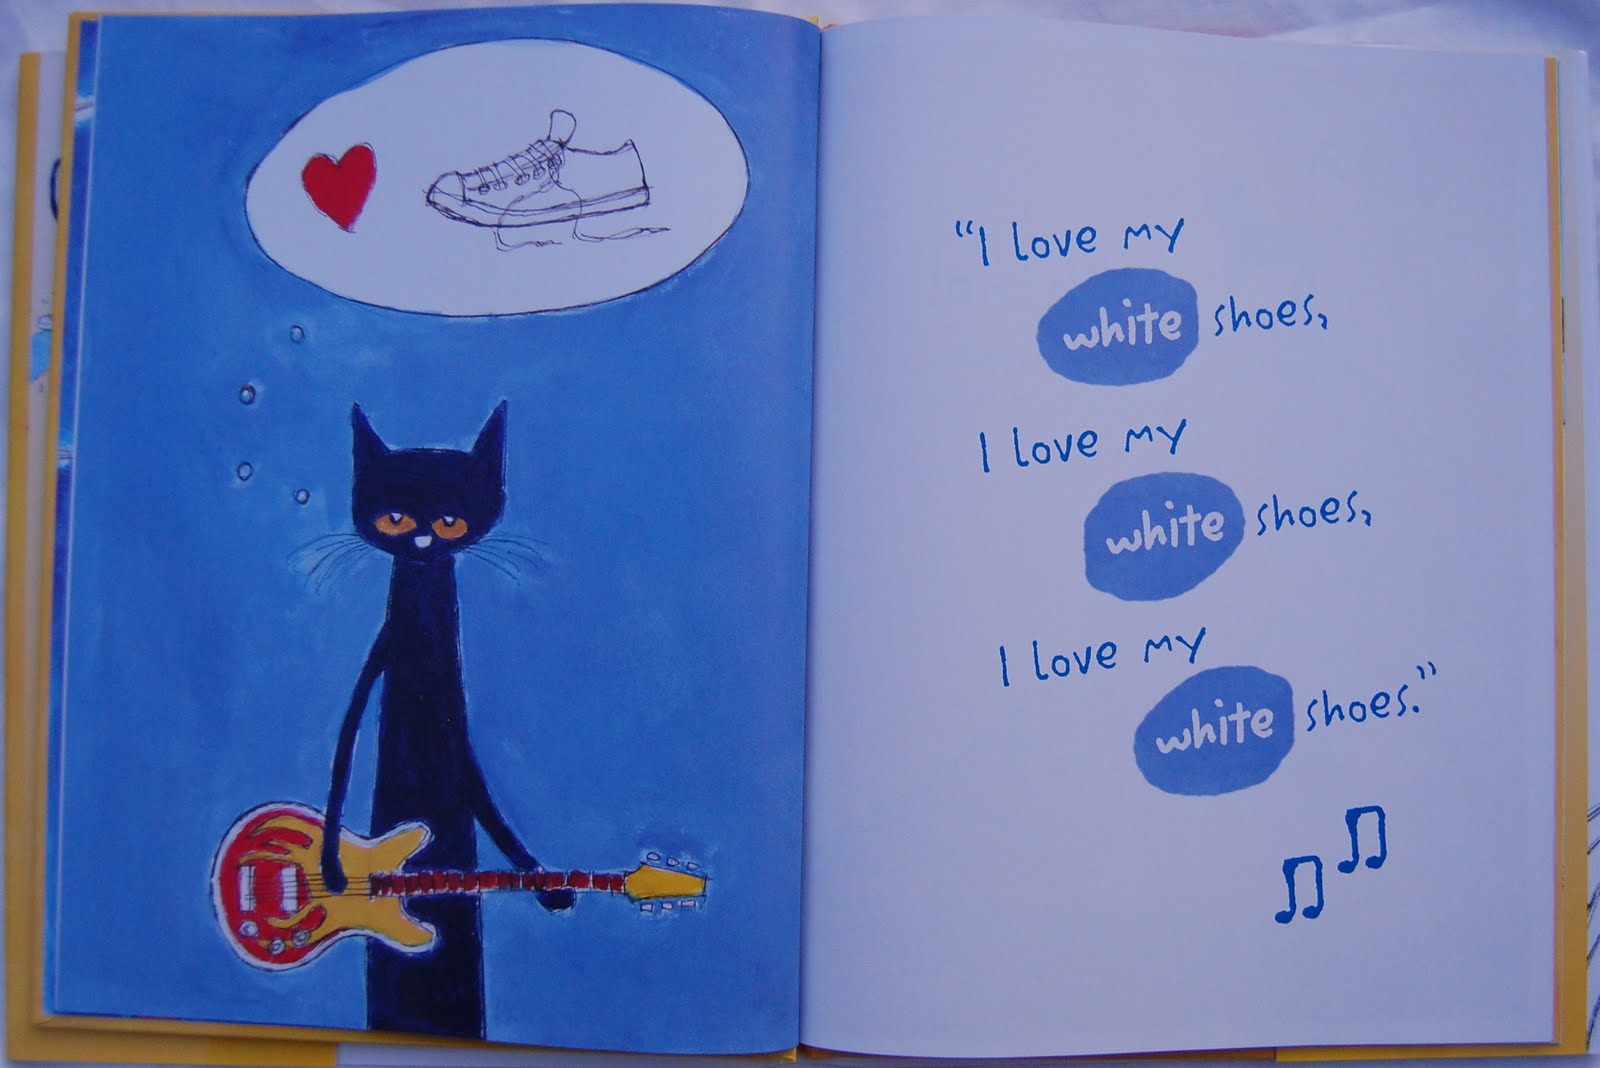 Pete The Cat I Love My White Shoes Printables I love my white shoesPete The Cat I Love My White Shoes